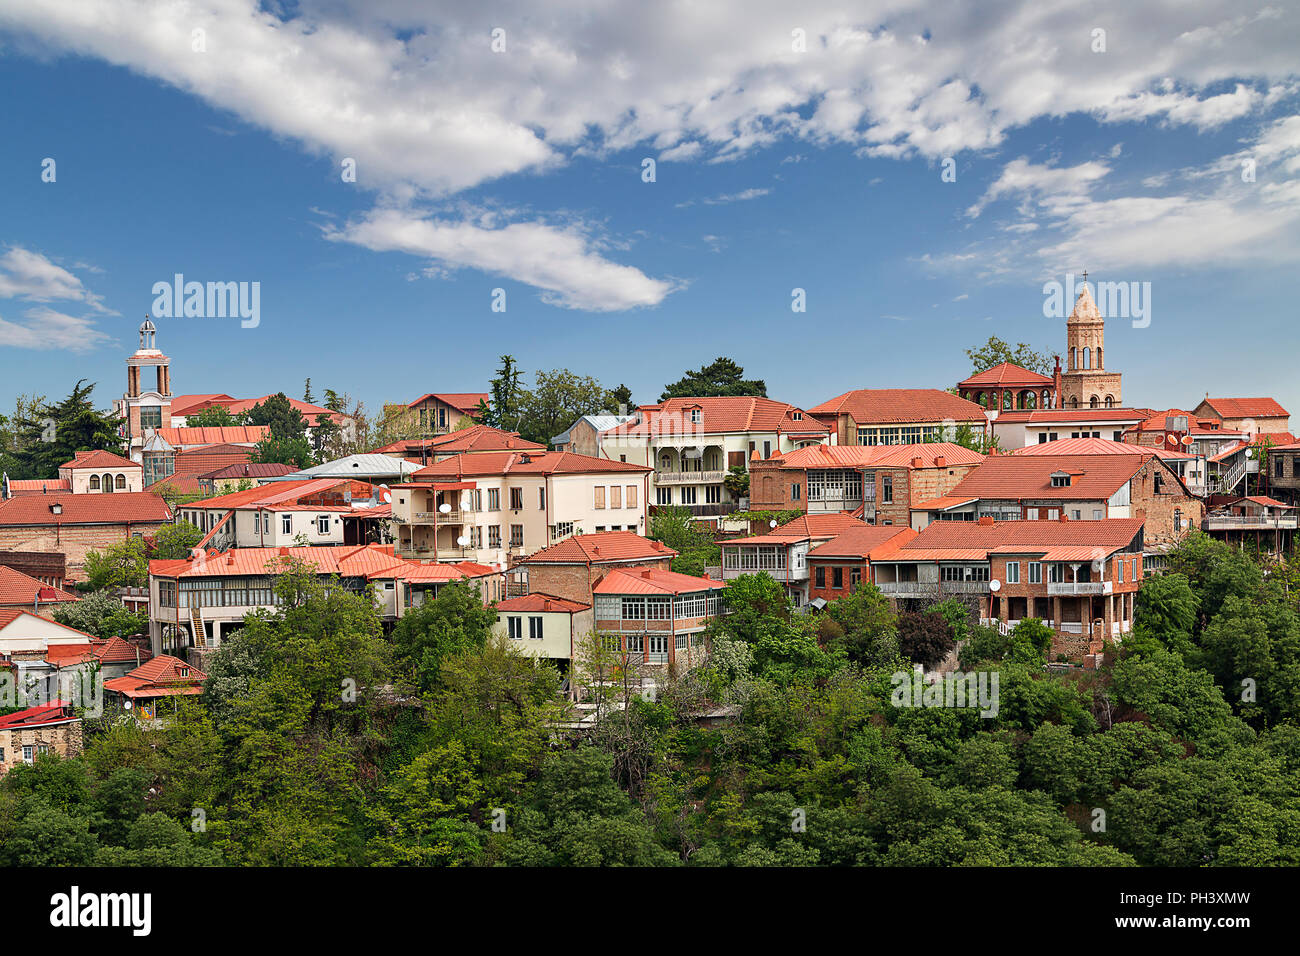 Traditional houses with red roof tiles in the city of Sighnaghi, in Georgia, Caucasus - Stock Image